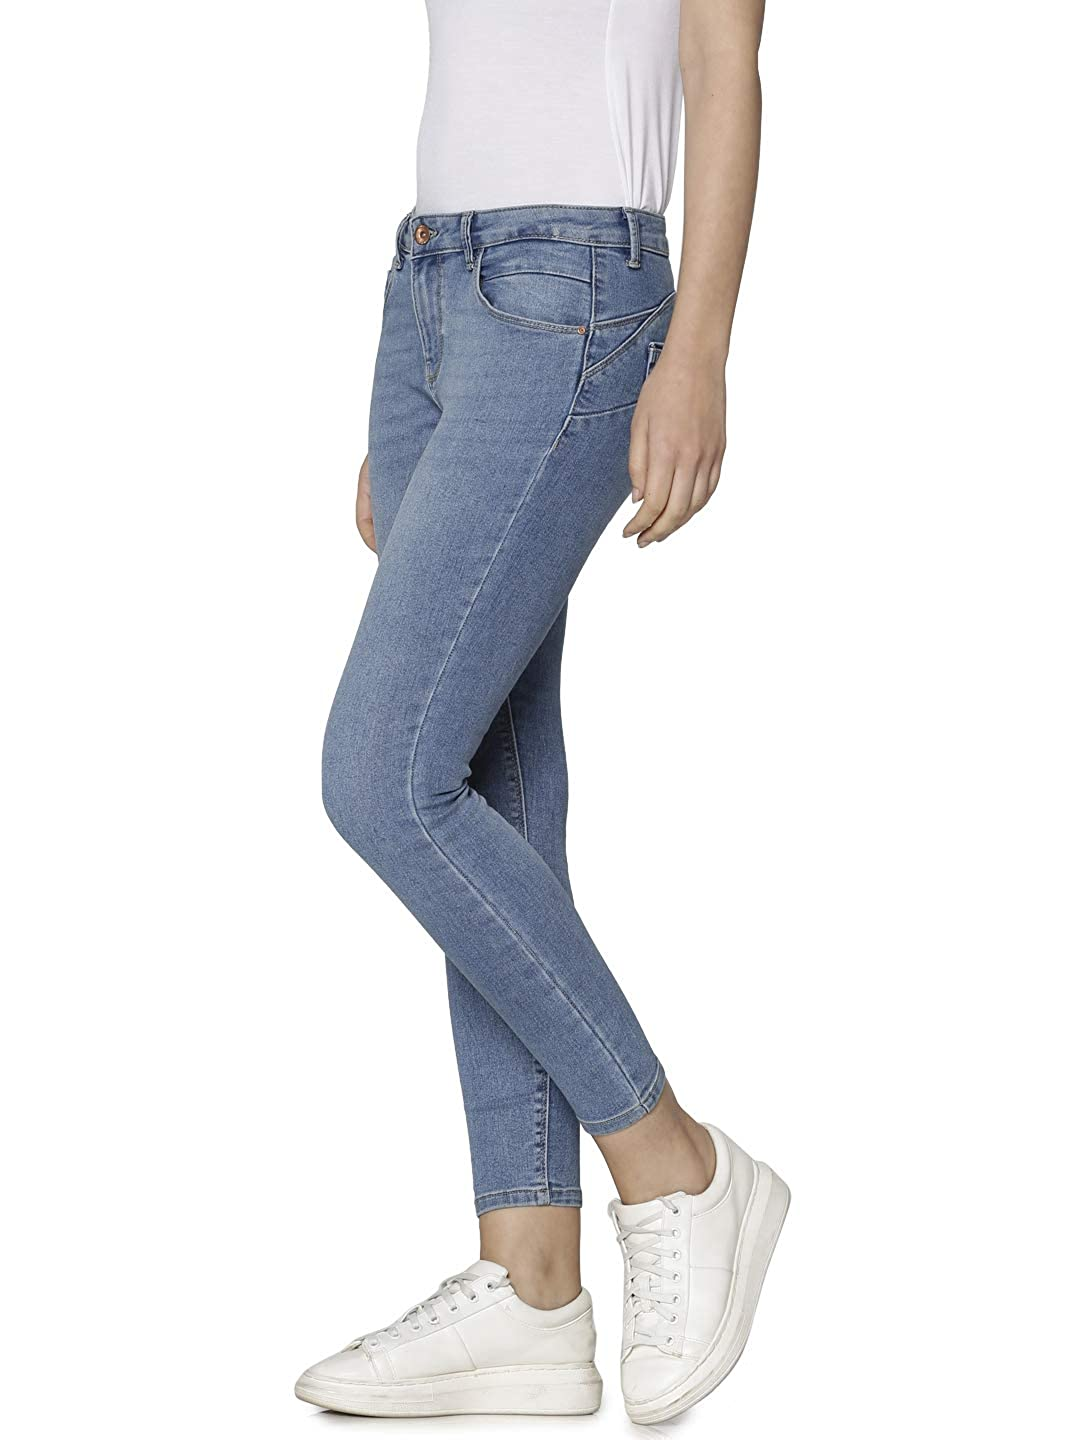 Only Jeans Woman Daisy Reg Push Up Ankle 15169093